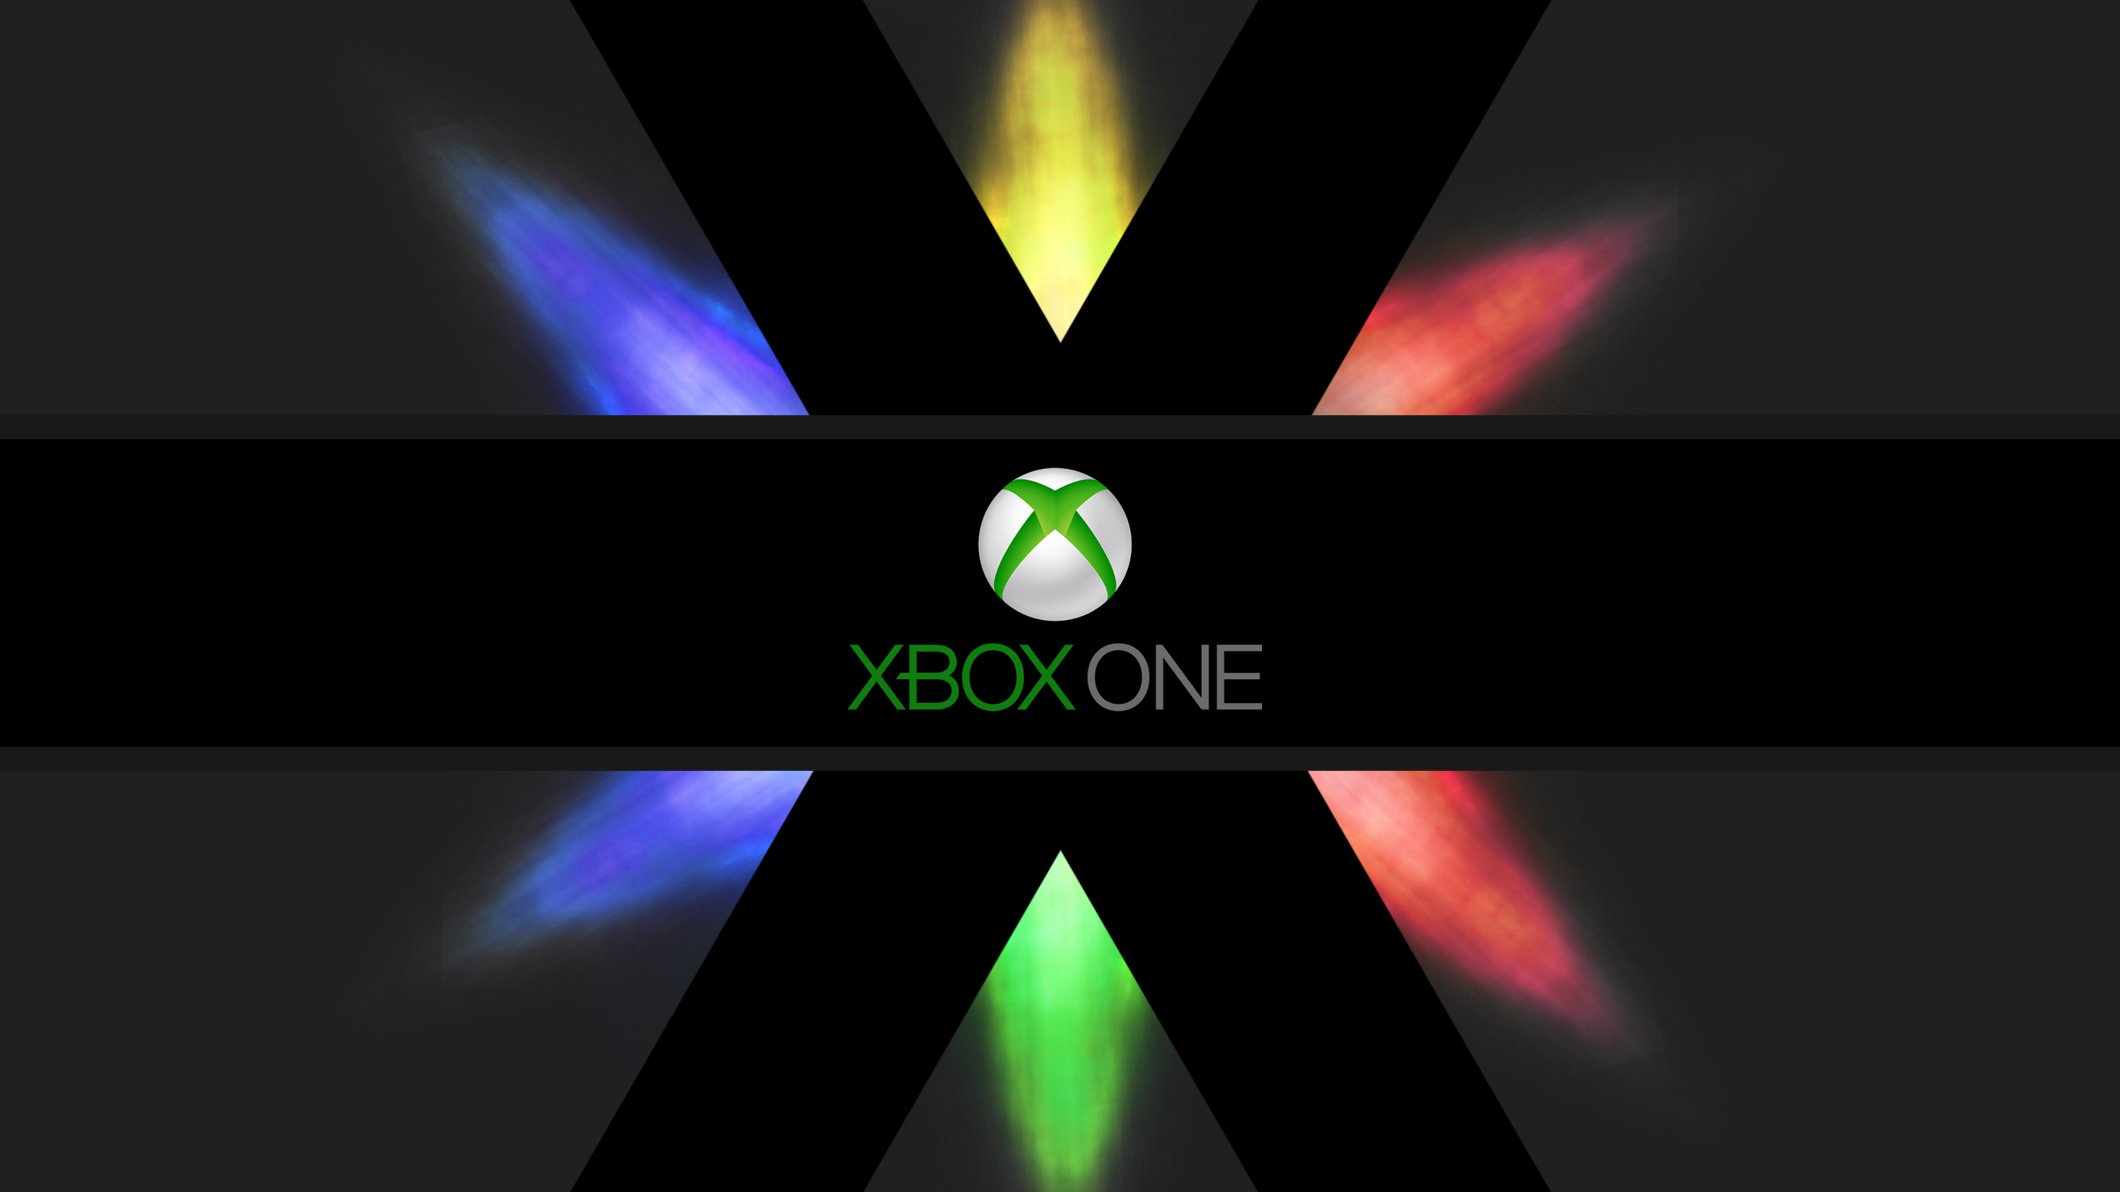 Xbox One Wallpaper 1920X1080 - WallpaperSafari Xbox One Game Wallpaper